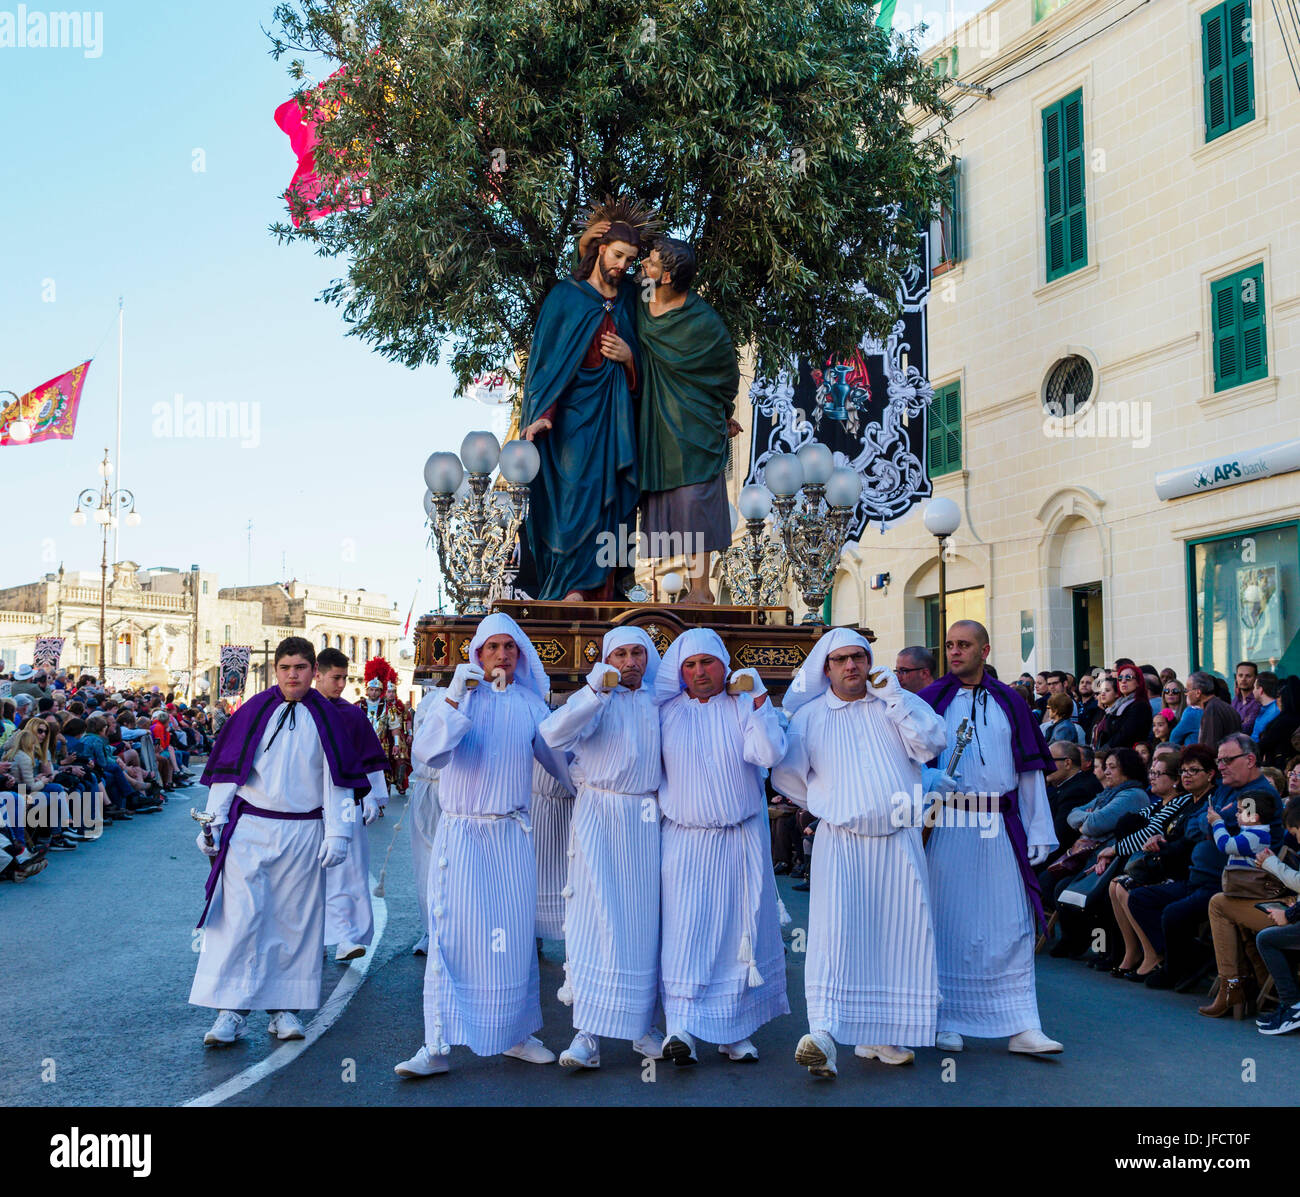 Inhabitants of the town of Zejtun / Malta had their traditional Good Friday procession / religious church parade - Stock Image